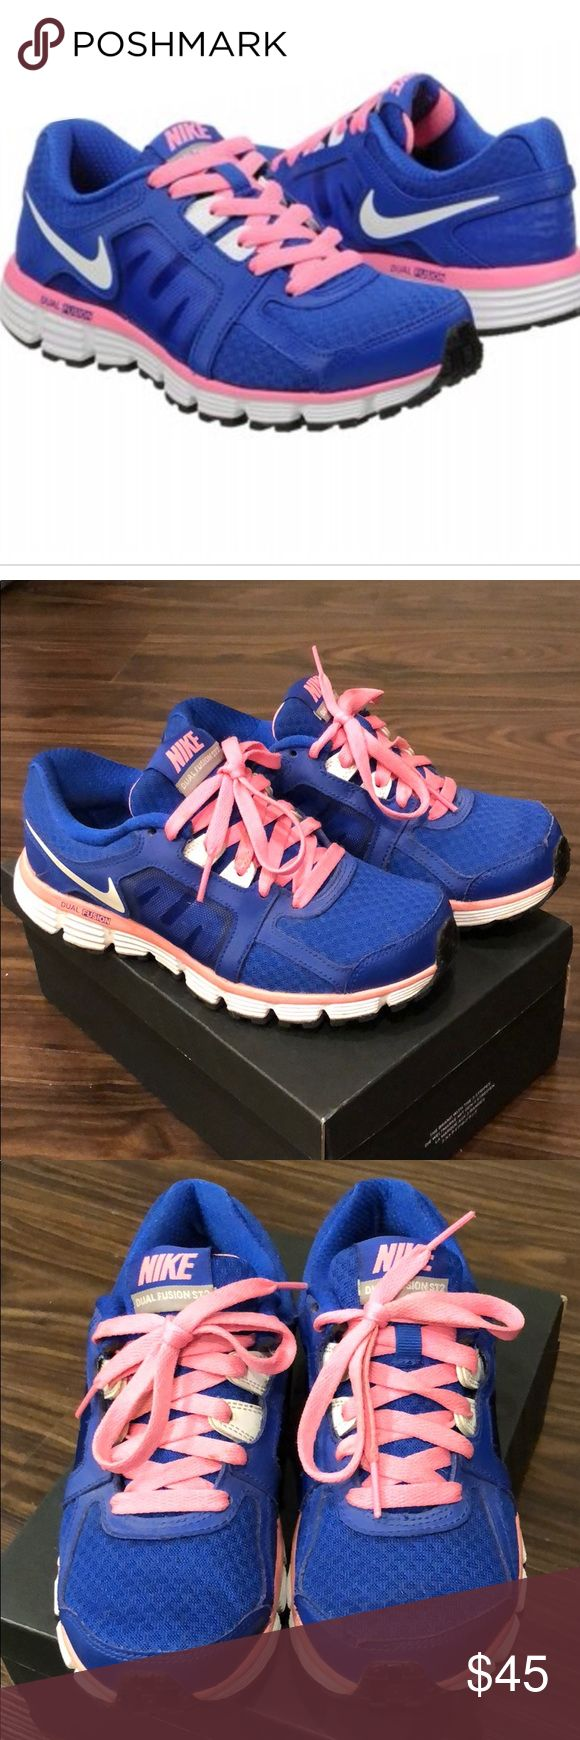 Nike Dual fusion Nike Dual fusion pink and blue sneakers. Really comfortable and great support for running. Never gave me shin splints. Minor rip in trim of one toe (see picture) but barely noticeable. Gently worn. Offers welcome! Nike Shoes Sneakers